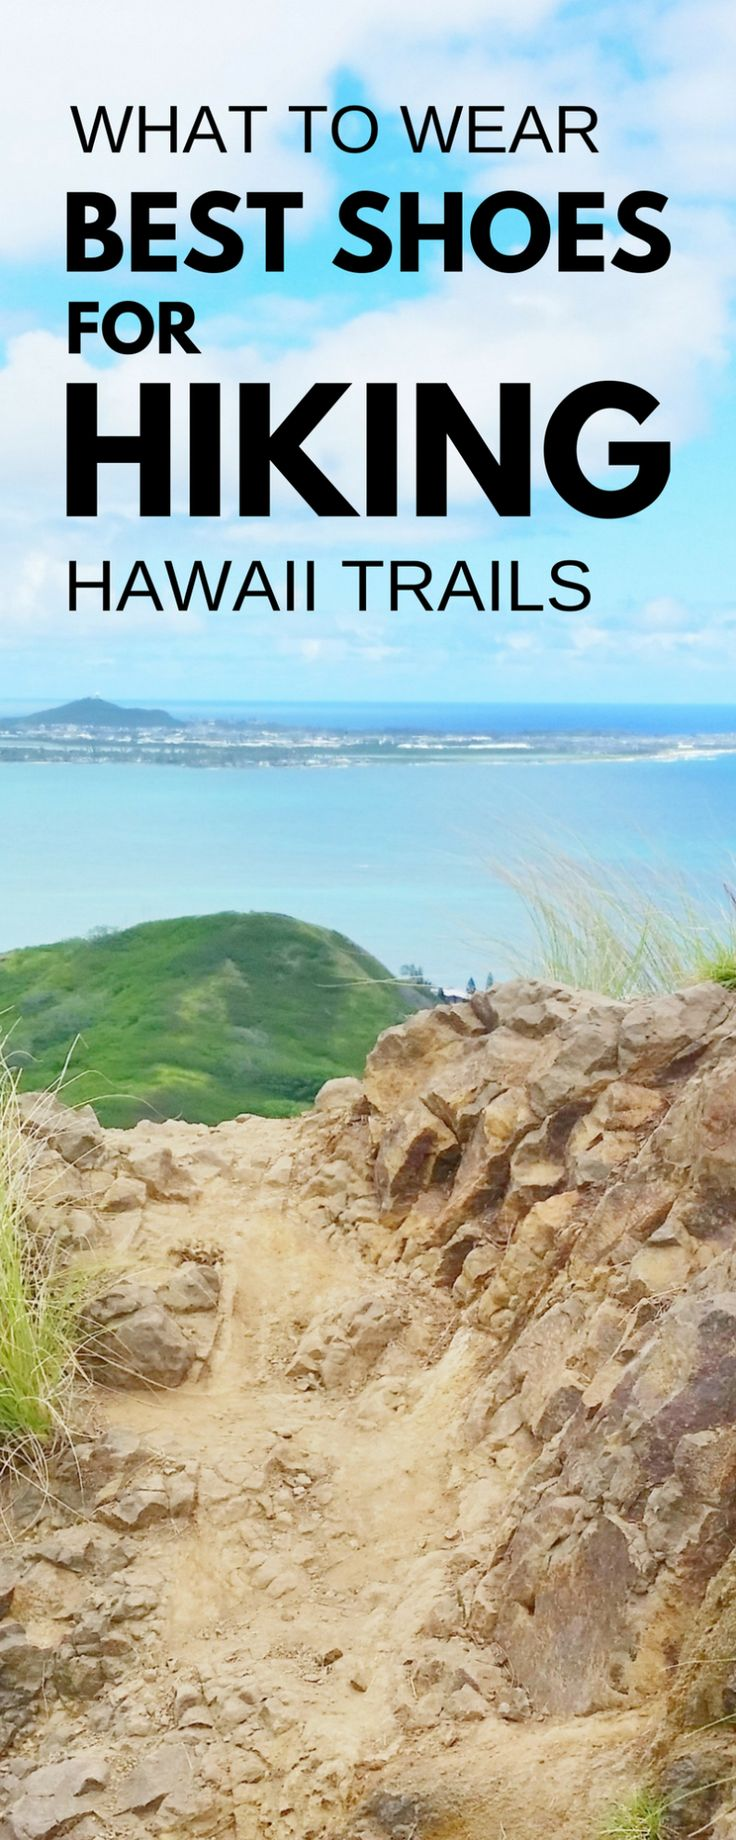 Hawaii vacation: what to wear hiking Hawaii hikes. Best hiking shoes vs boots vs hiking sandals vs walking shoes vs flip flops vs trail running shoes?! Lightweight waterproof, women and men. US hiking trails in Hawaii, easy things to do near beaches! Planning tips, what to wear in Hawaii, what to pack, Hawaii packing list. Outdoor travel destinations, budget adventures. Oahu, Kauai, Maui, Big Island. Essential travel tips, best travel shoes on Hawaii trip.. #hawaii #oahu #kauai #maui…